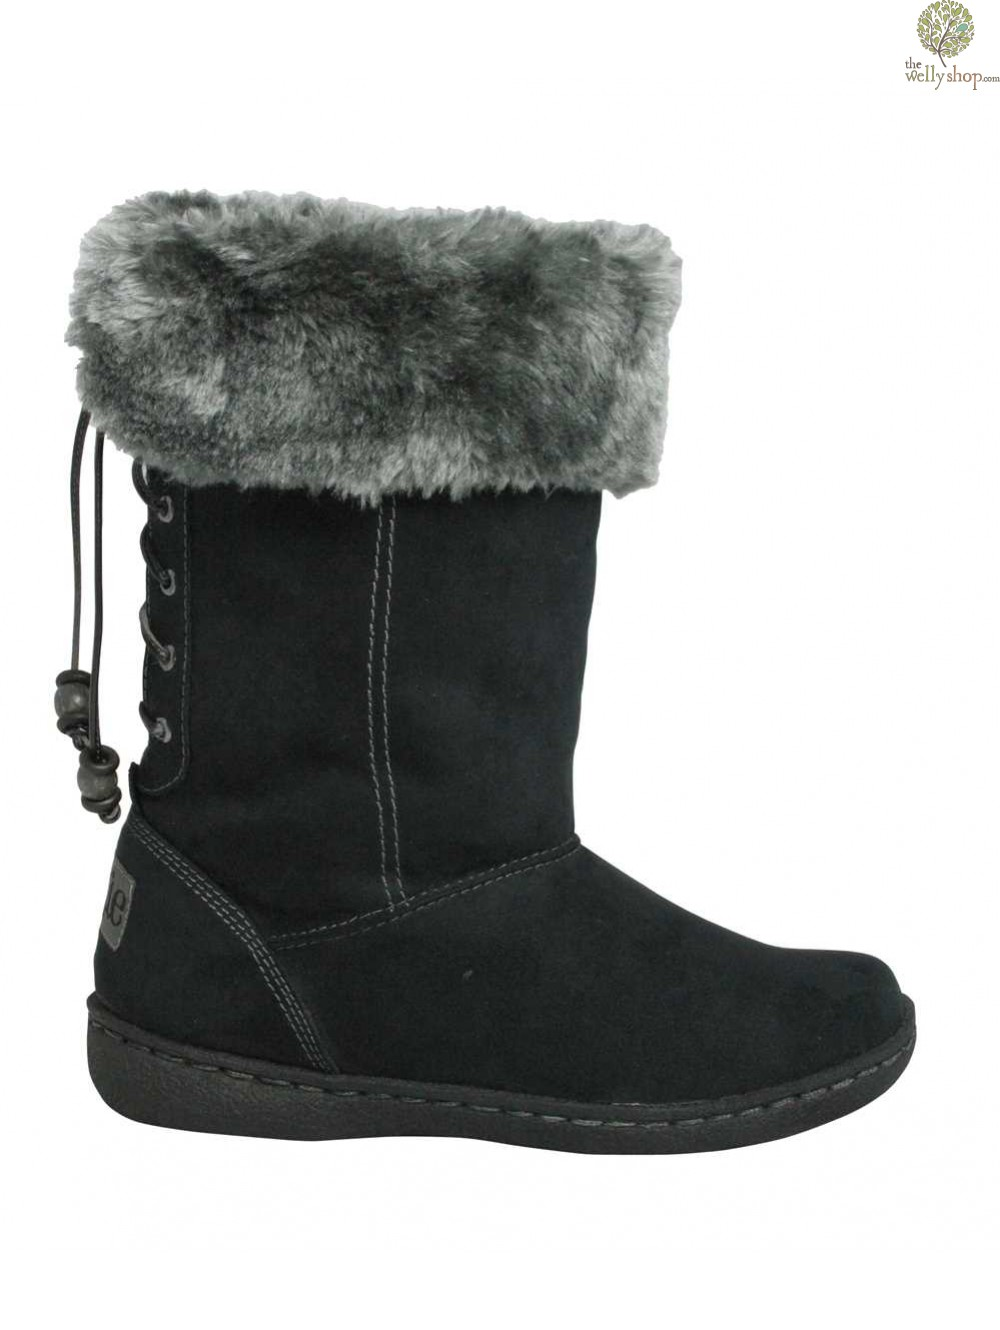 ugg boots ireland cheap